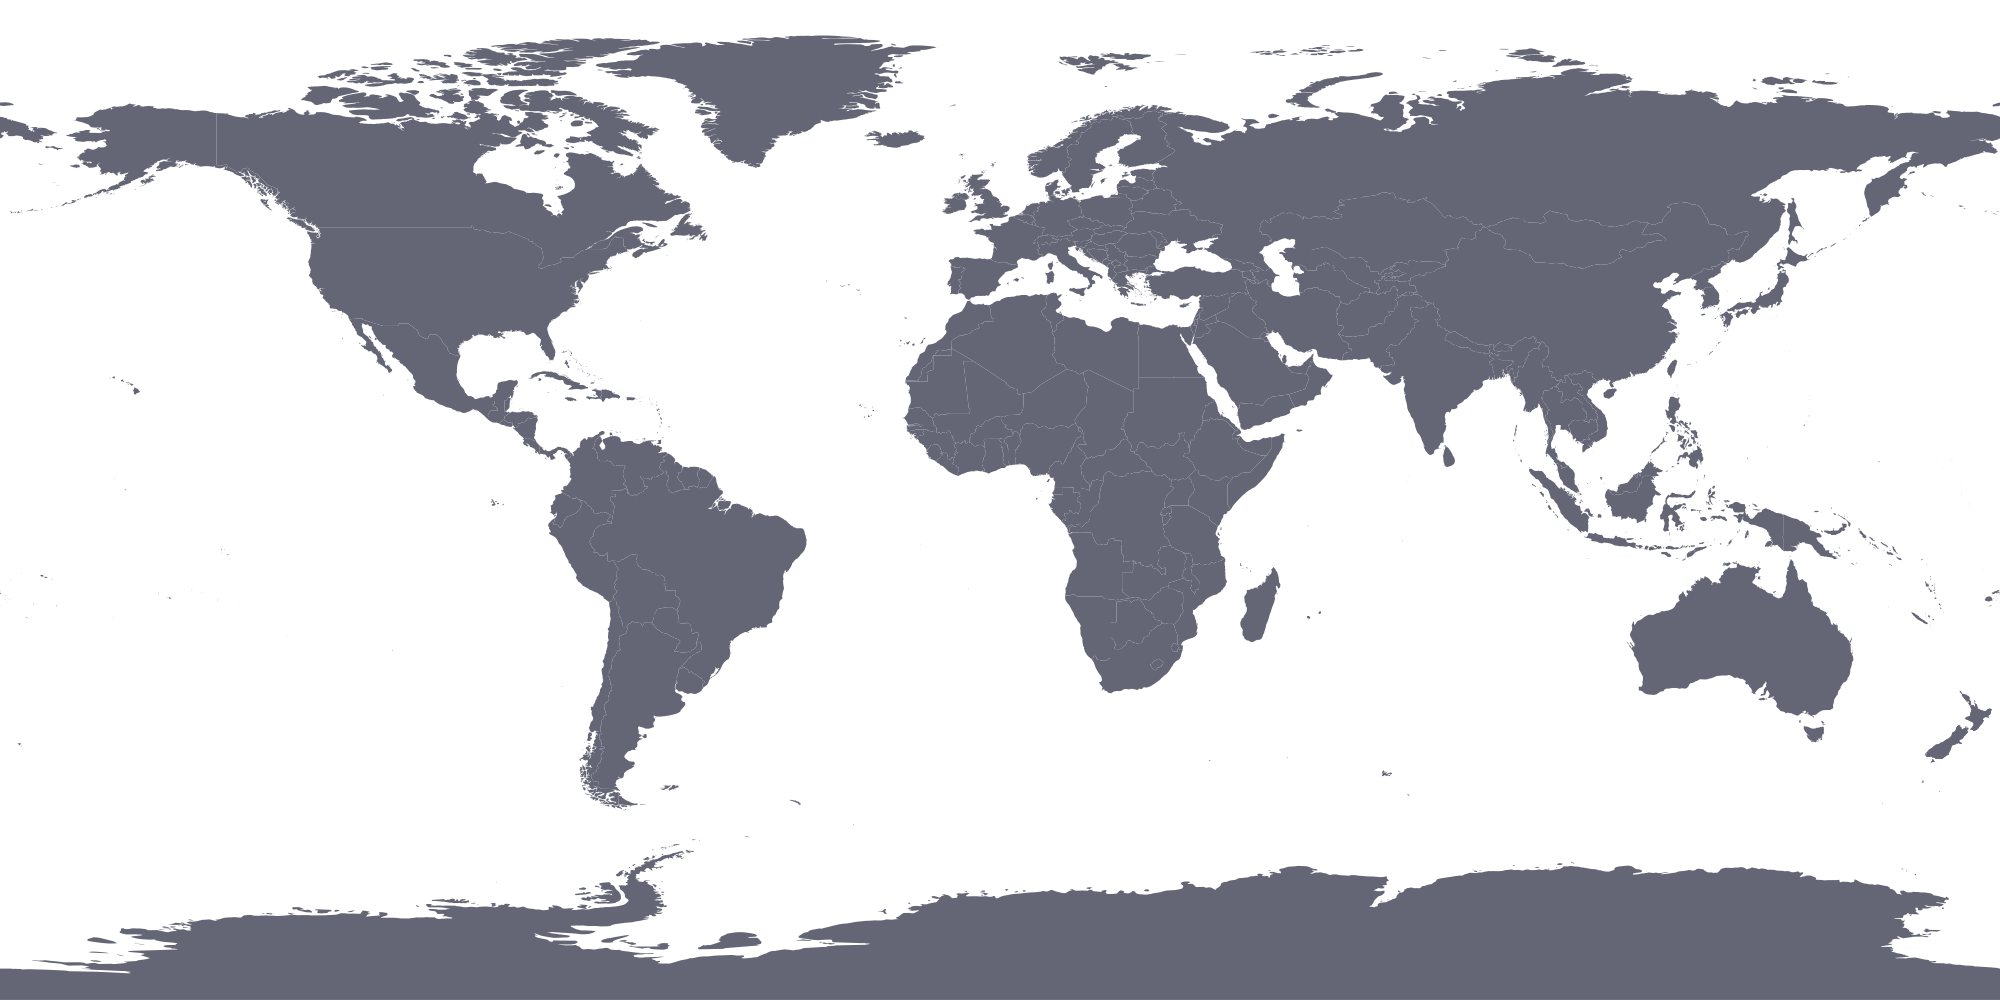 web/static/assets/images/worldmap-colored_crushed.png